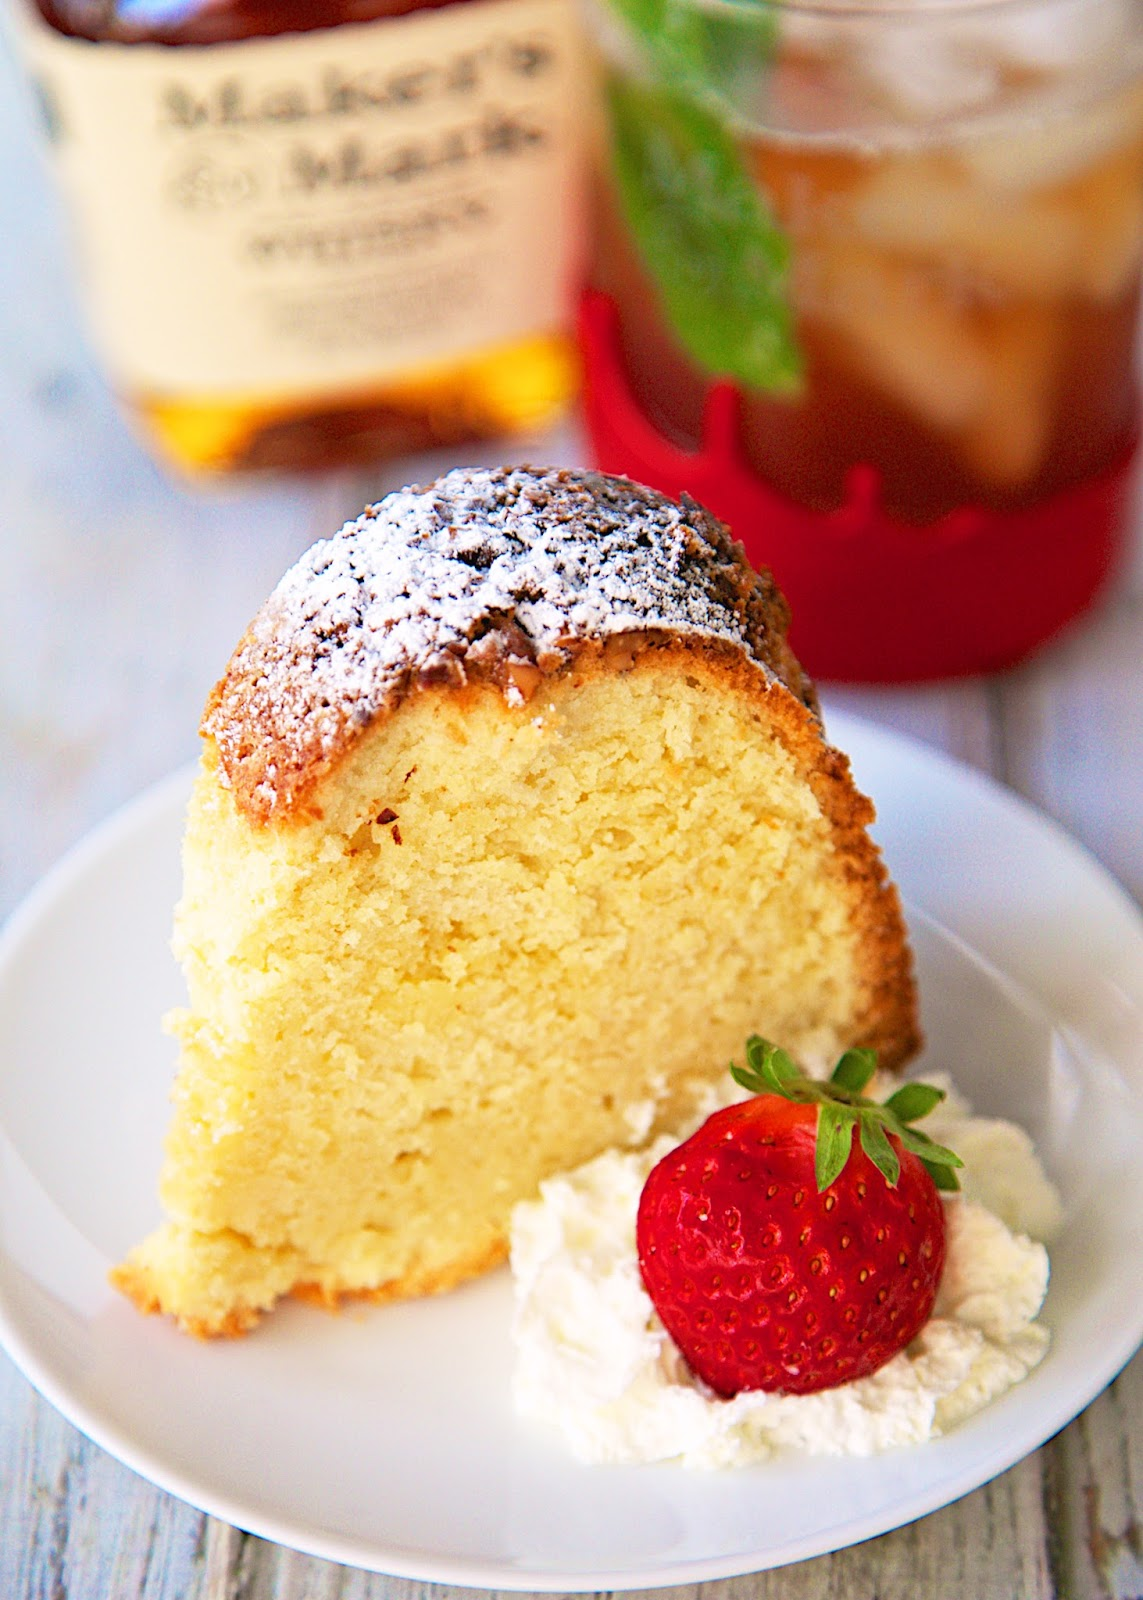 Bourbon Pound Cake Recipe - egg whites are whipped and folded into the batter - makes an amazing pound cake! The bourbon in the cake makes it the perfect treat for watching the Kentucky Derby!